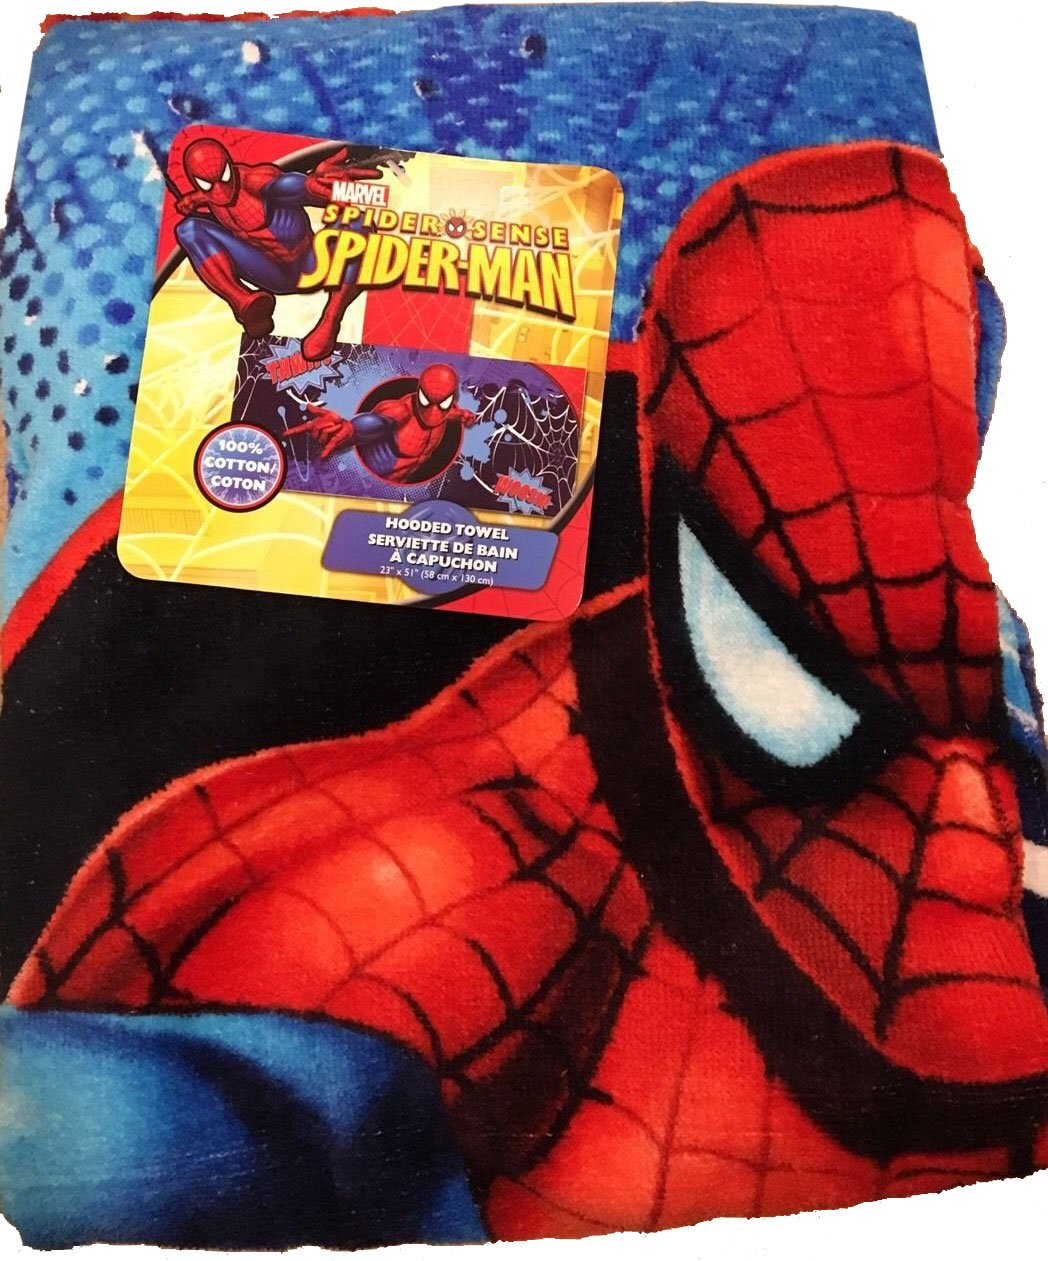 Marvel Spiderman Hooded Towel For Bath, Pool, or Beach